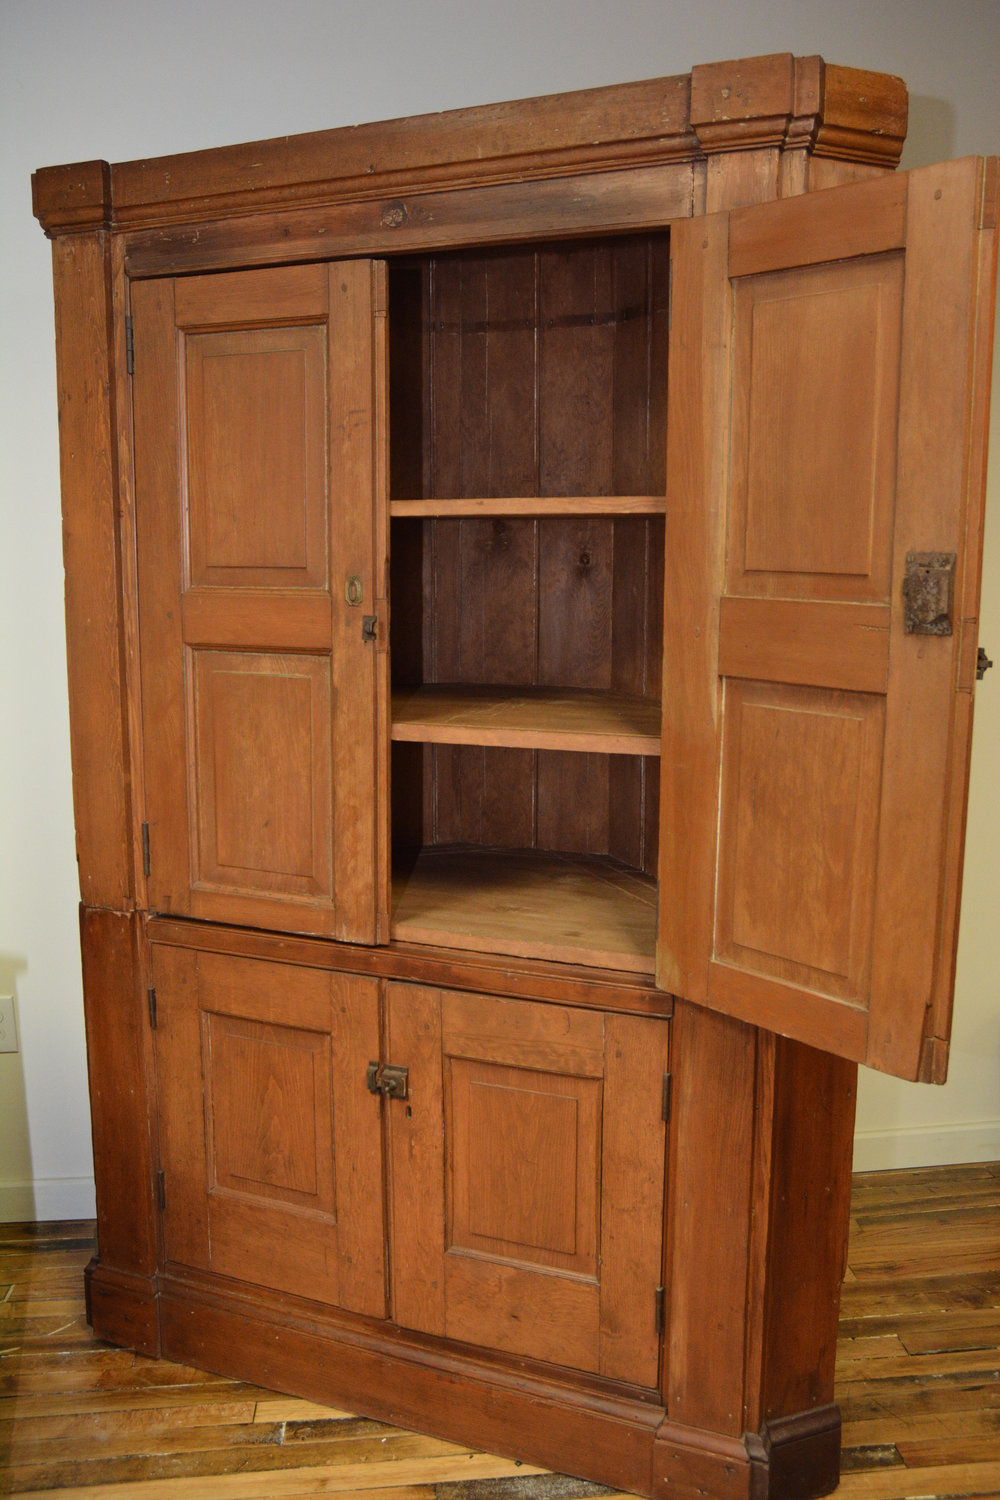 Unusal Corner Hutch - Bring old world character into your kitchen with this antique corner hutch. The shelves have a a double row of grooves for displaying and storing plates and platters, and the hutch boast a full 22